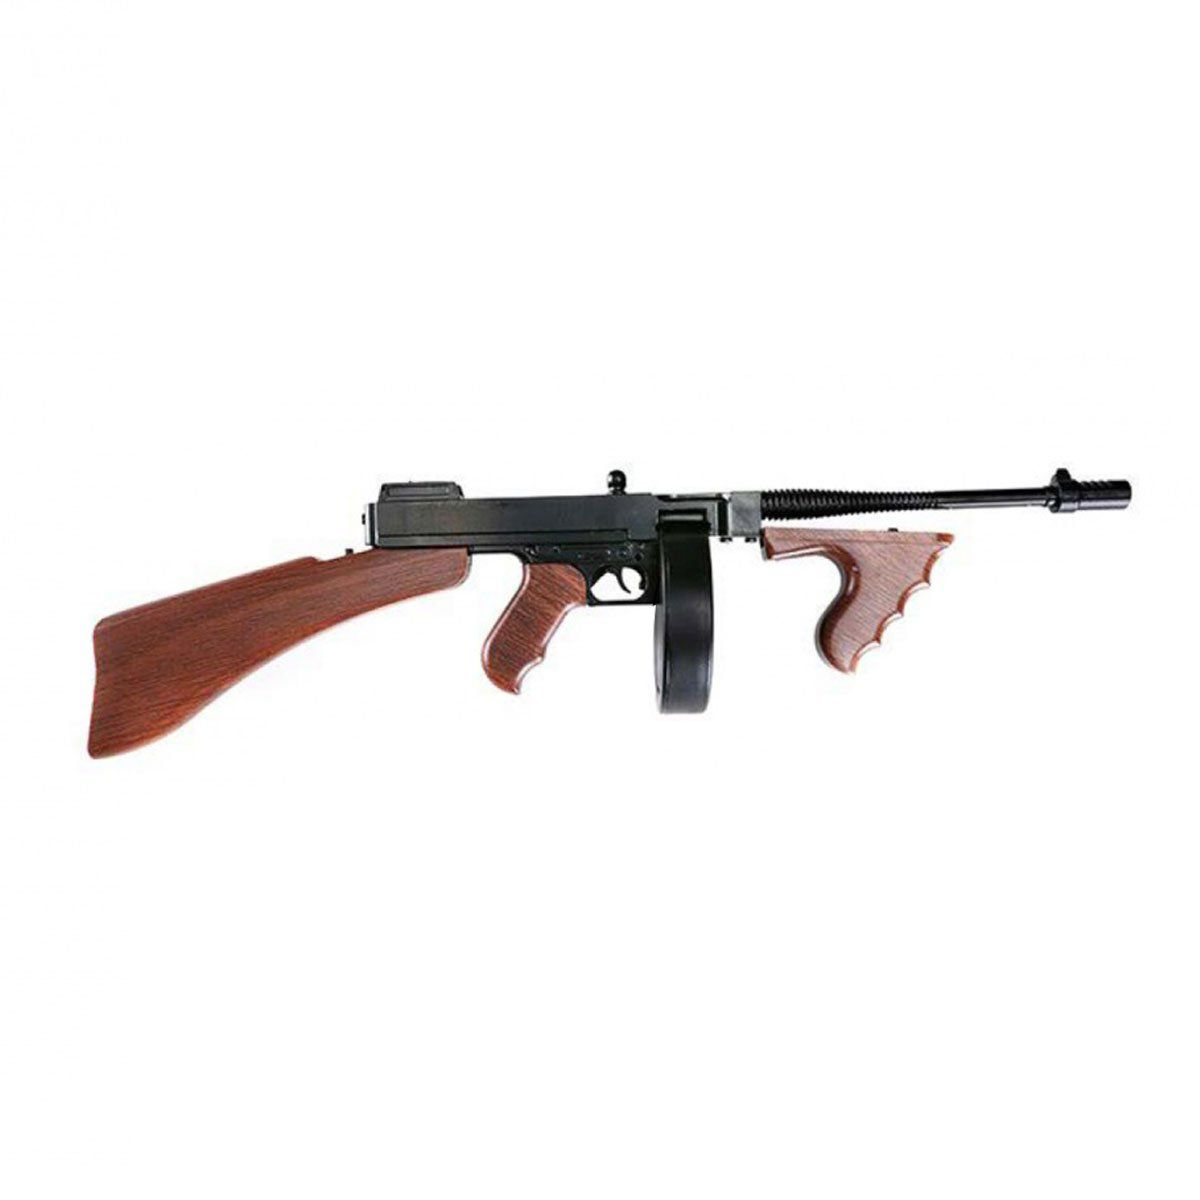 Miniatura de Arma Thompson M1928 Arsenal Guns